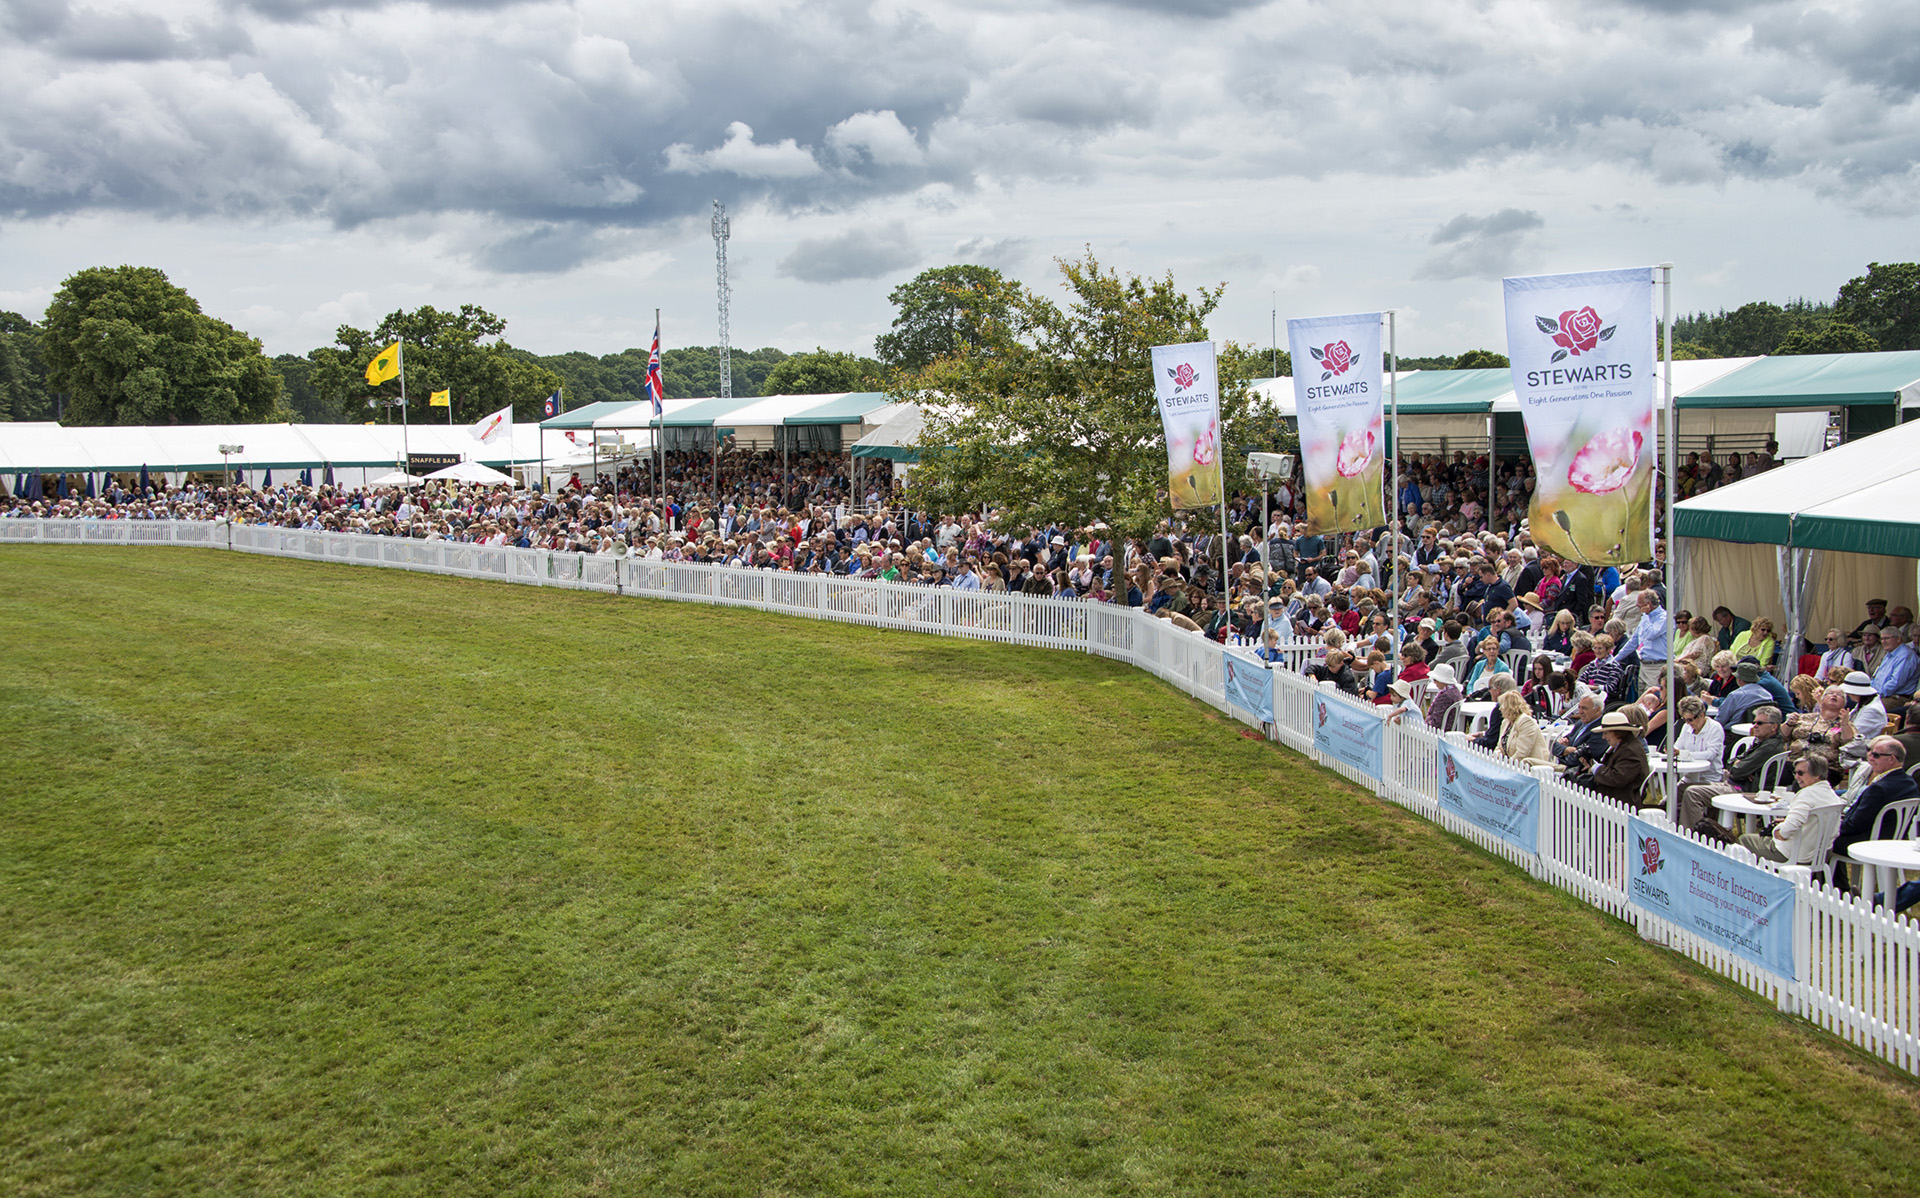 Watch the action in the main rings from the members grandstand seating